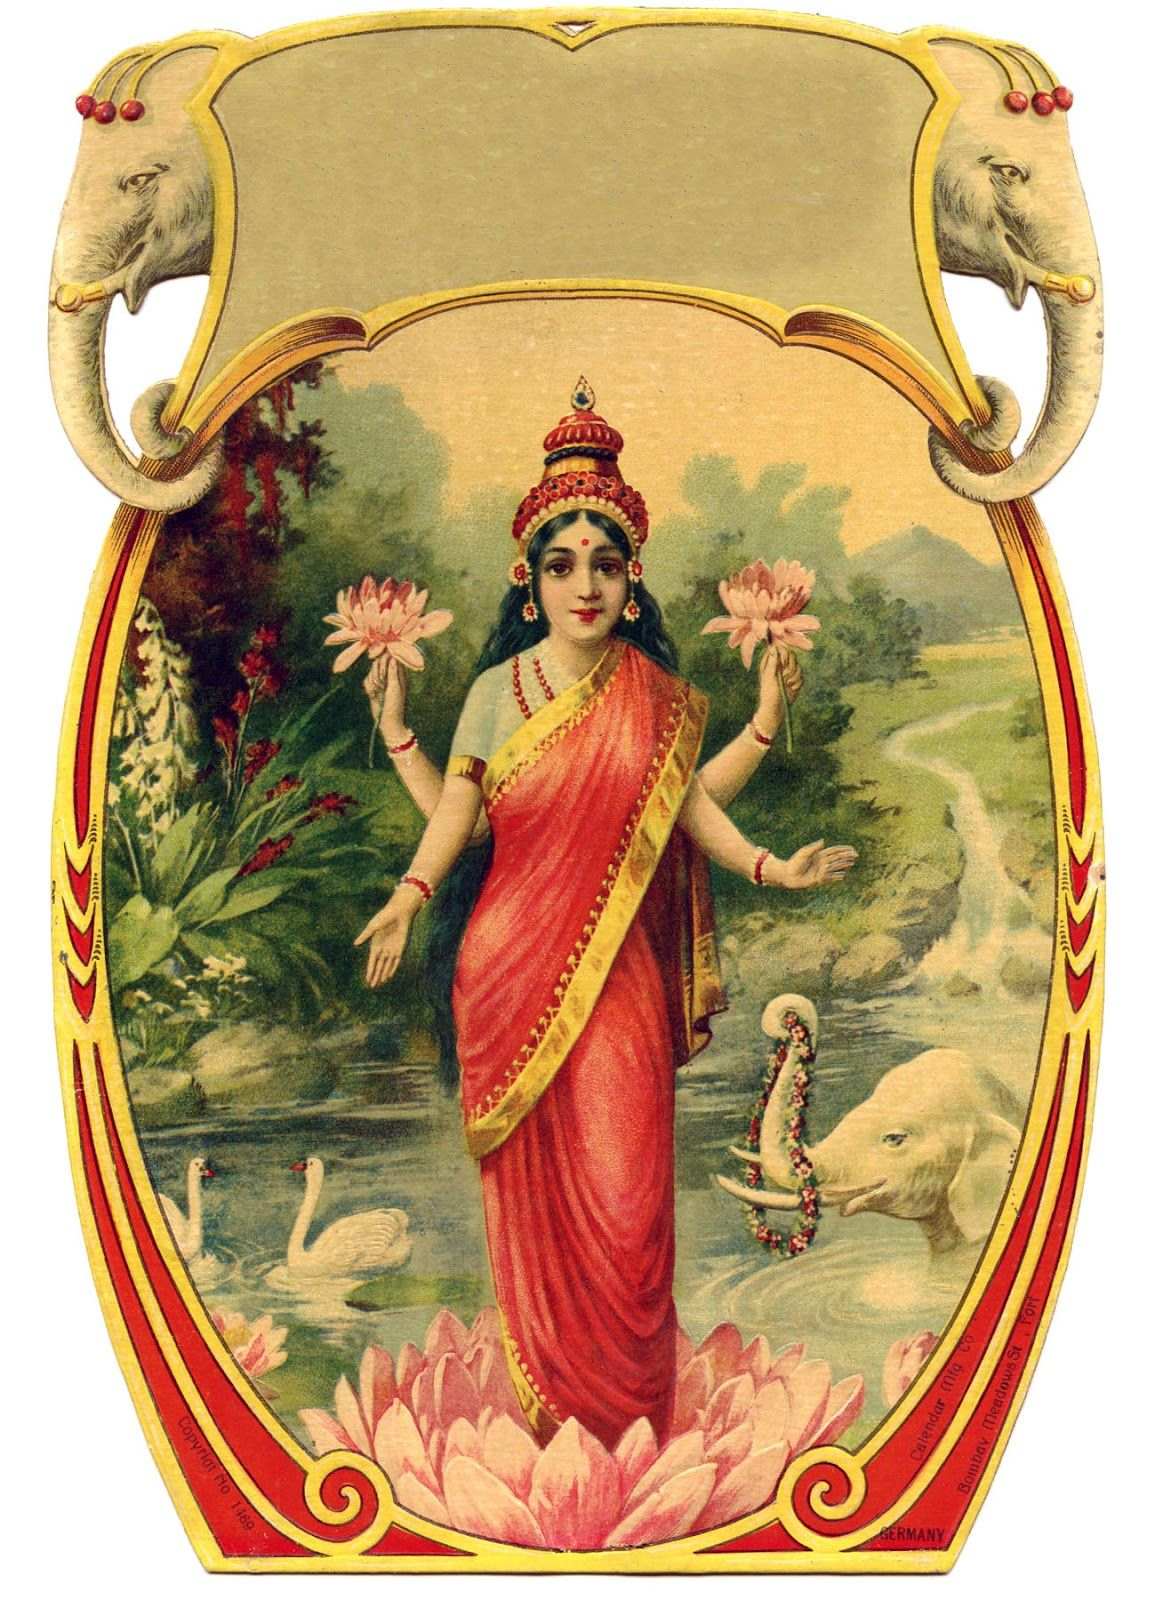 Vintage Graphic Beautiful Goddess with Lotus Flower